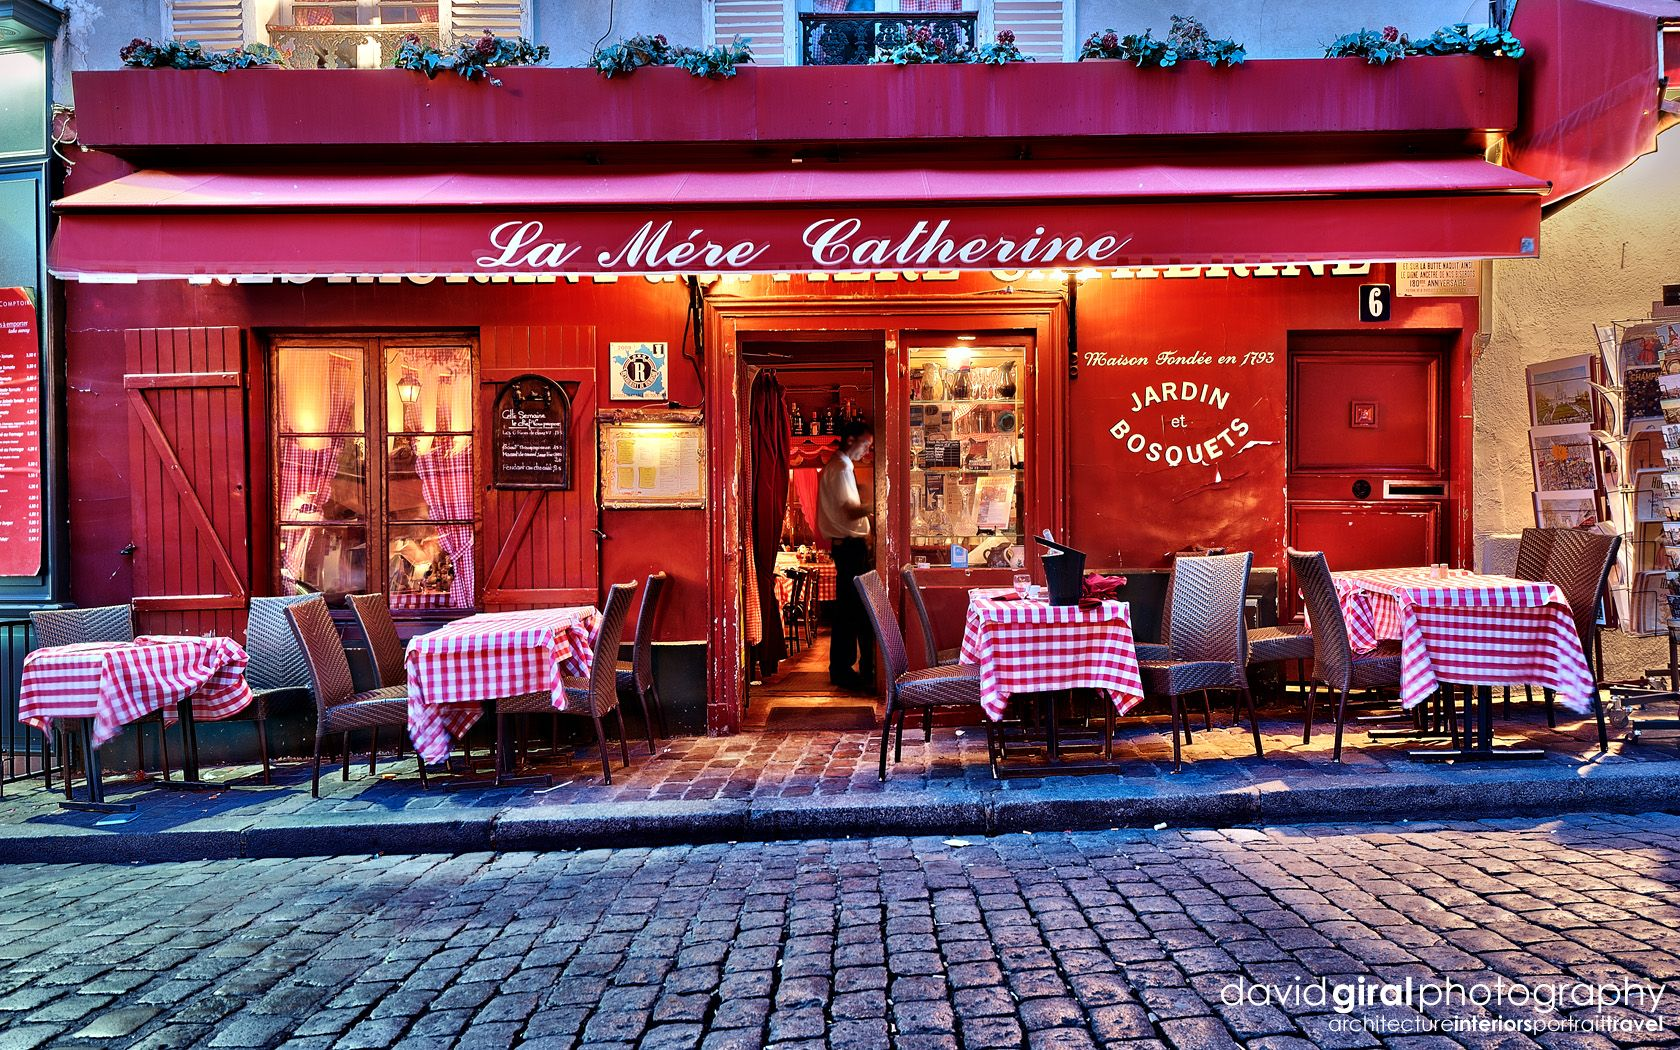 Travel Exploring Paris Montmartre Restaurant La Mere Catherine